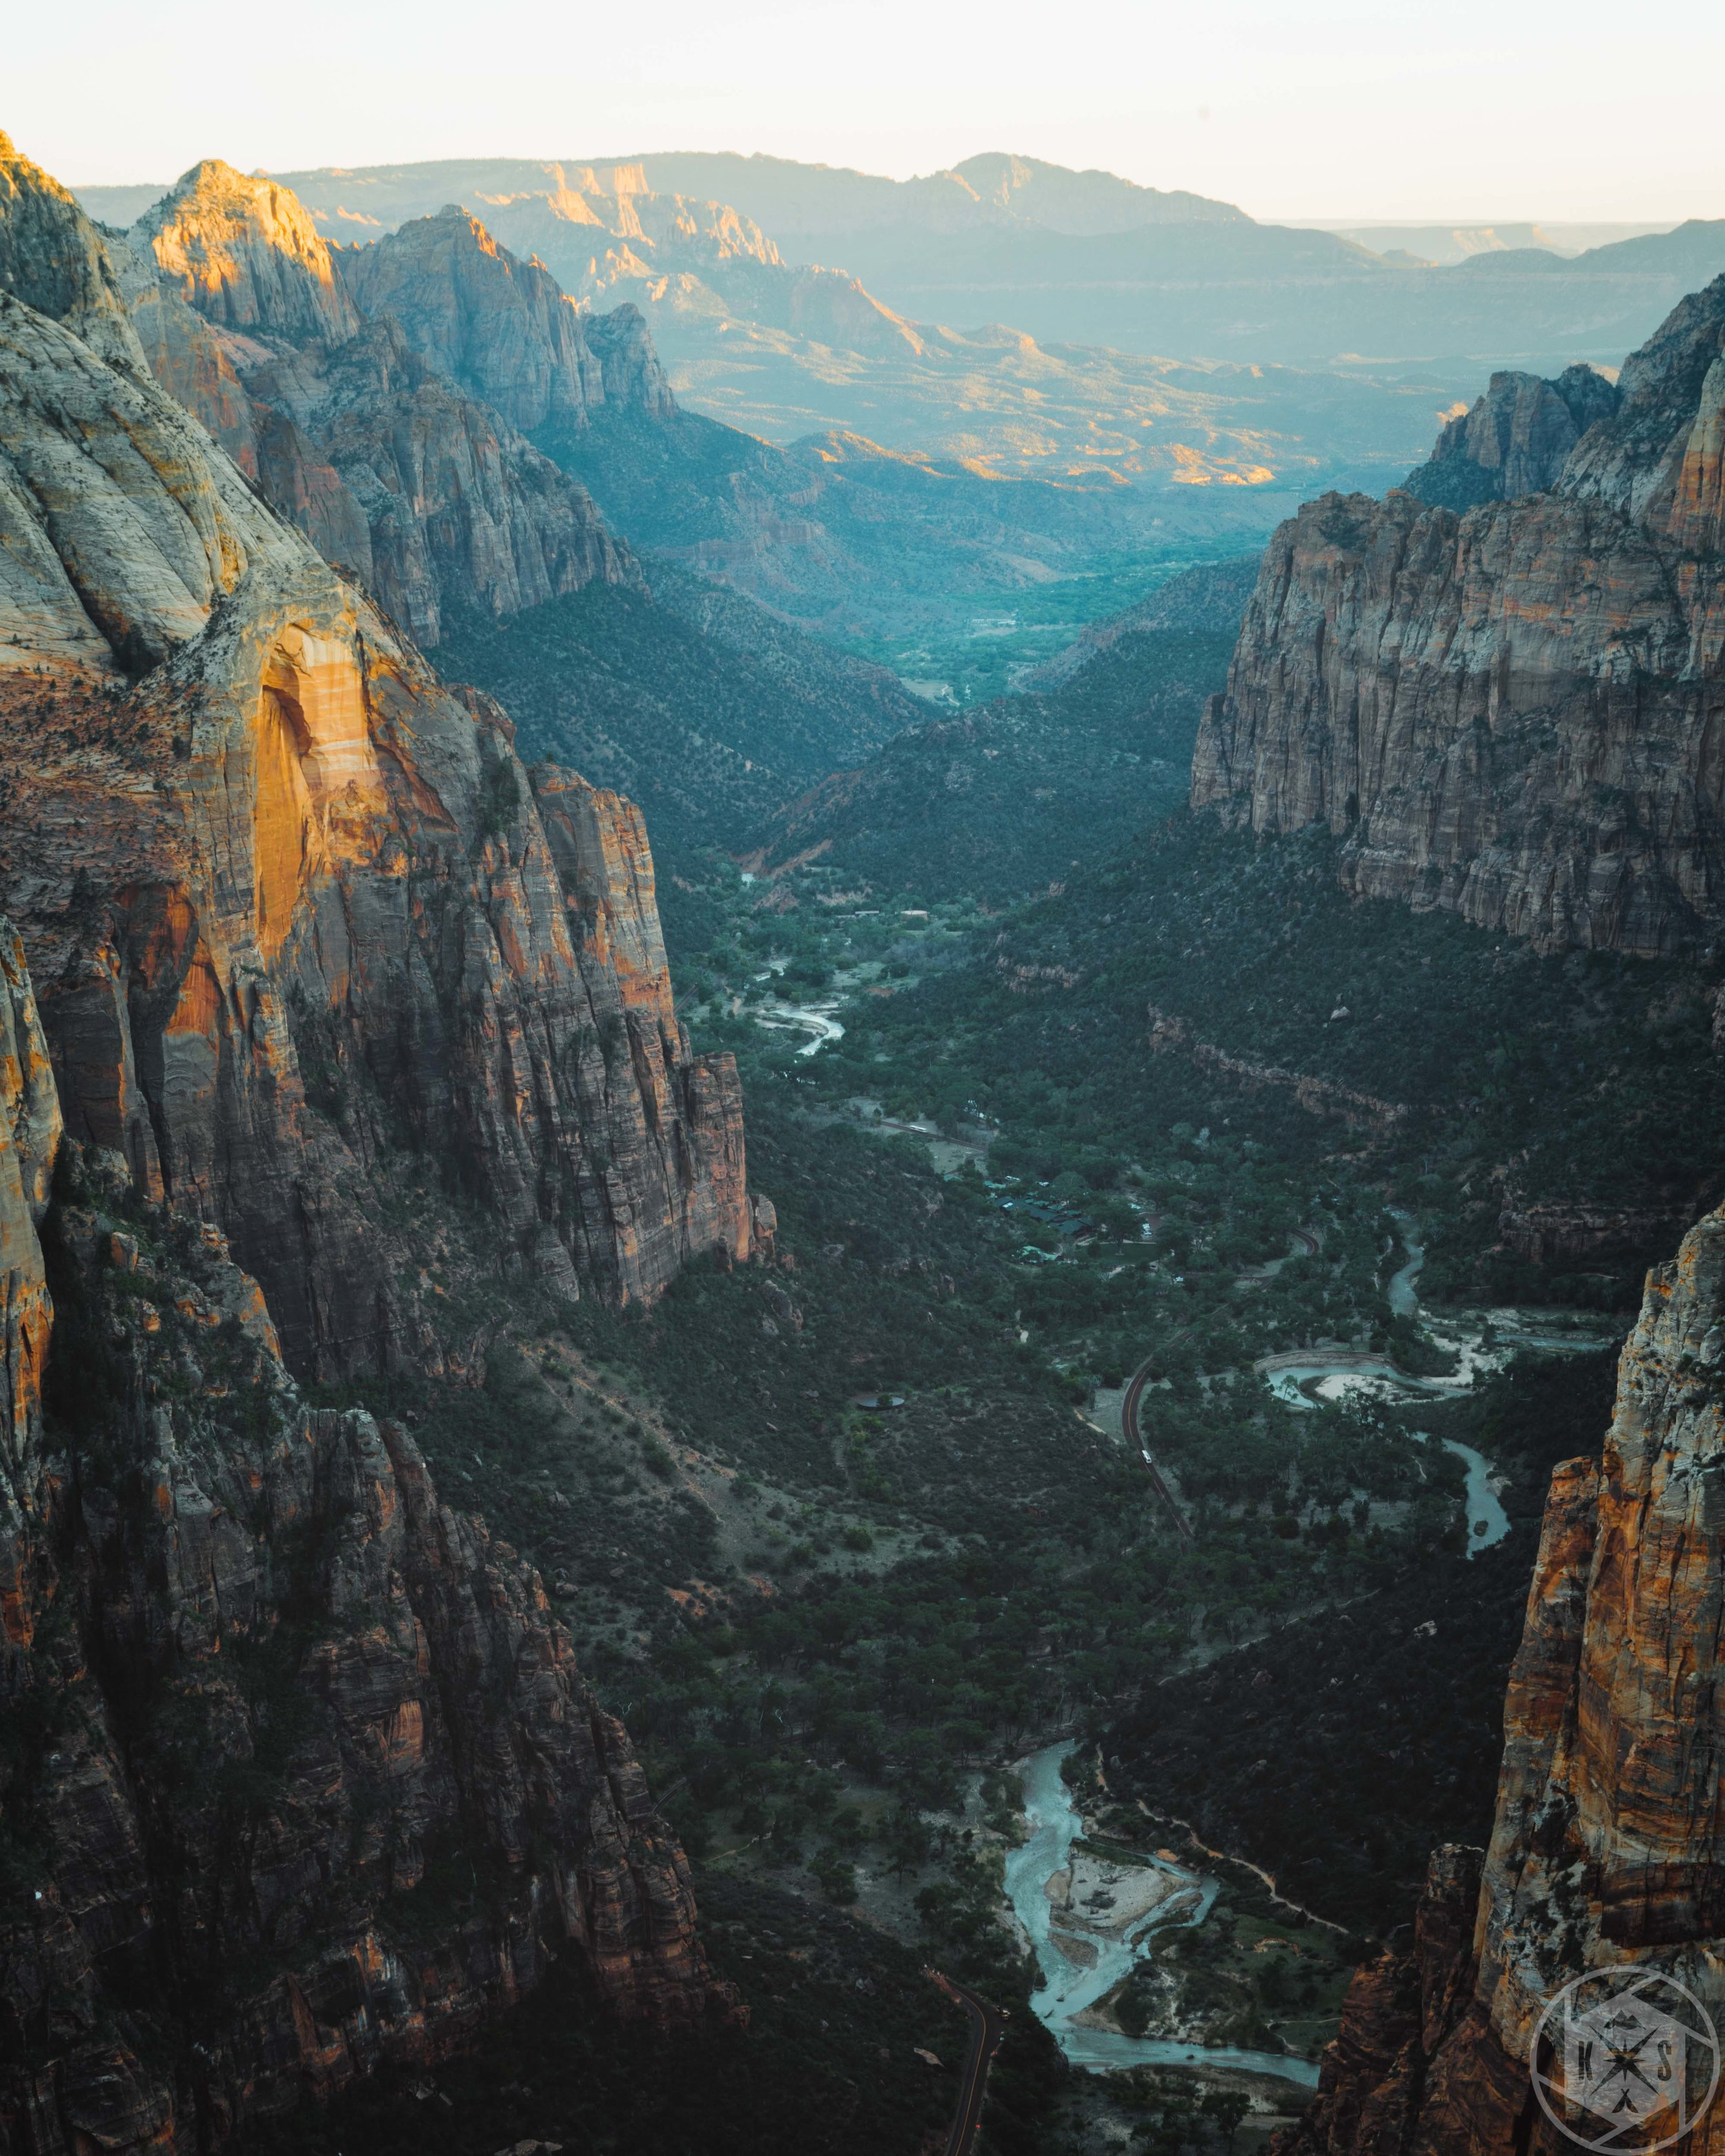 Observation Point: Zion National Park